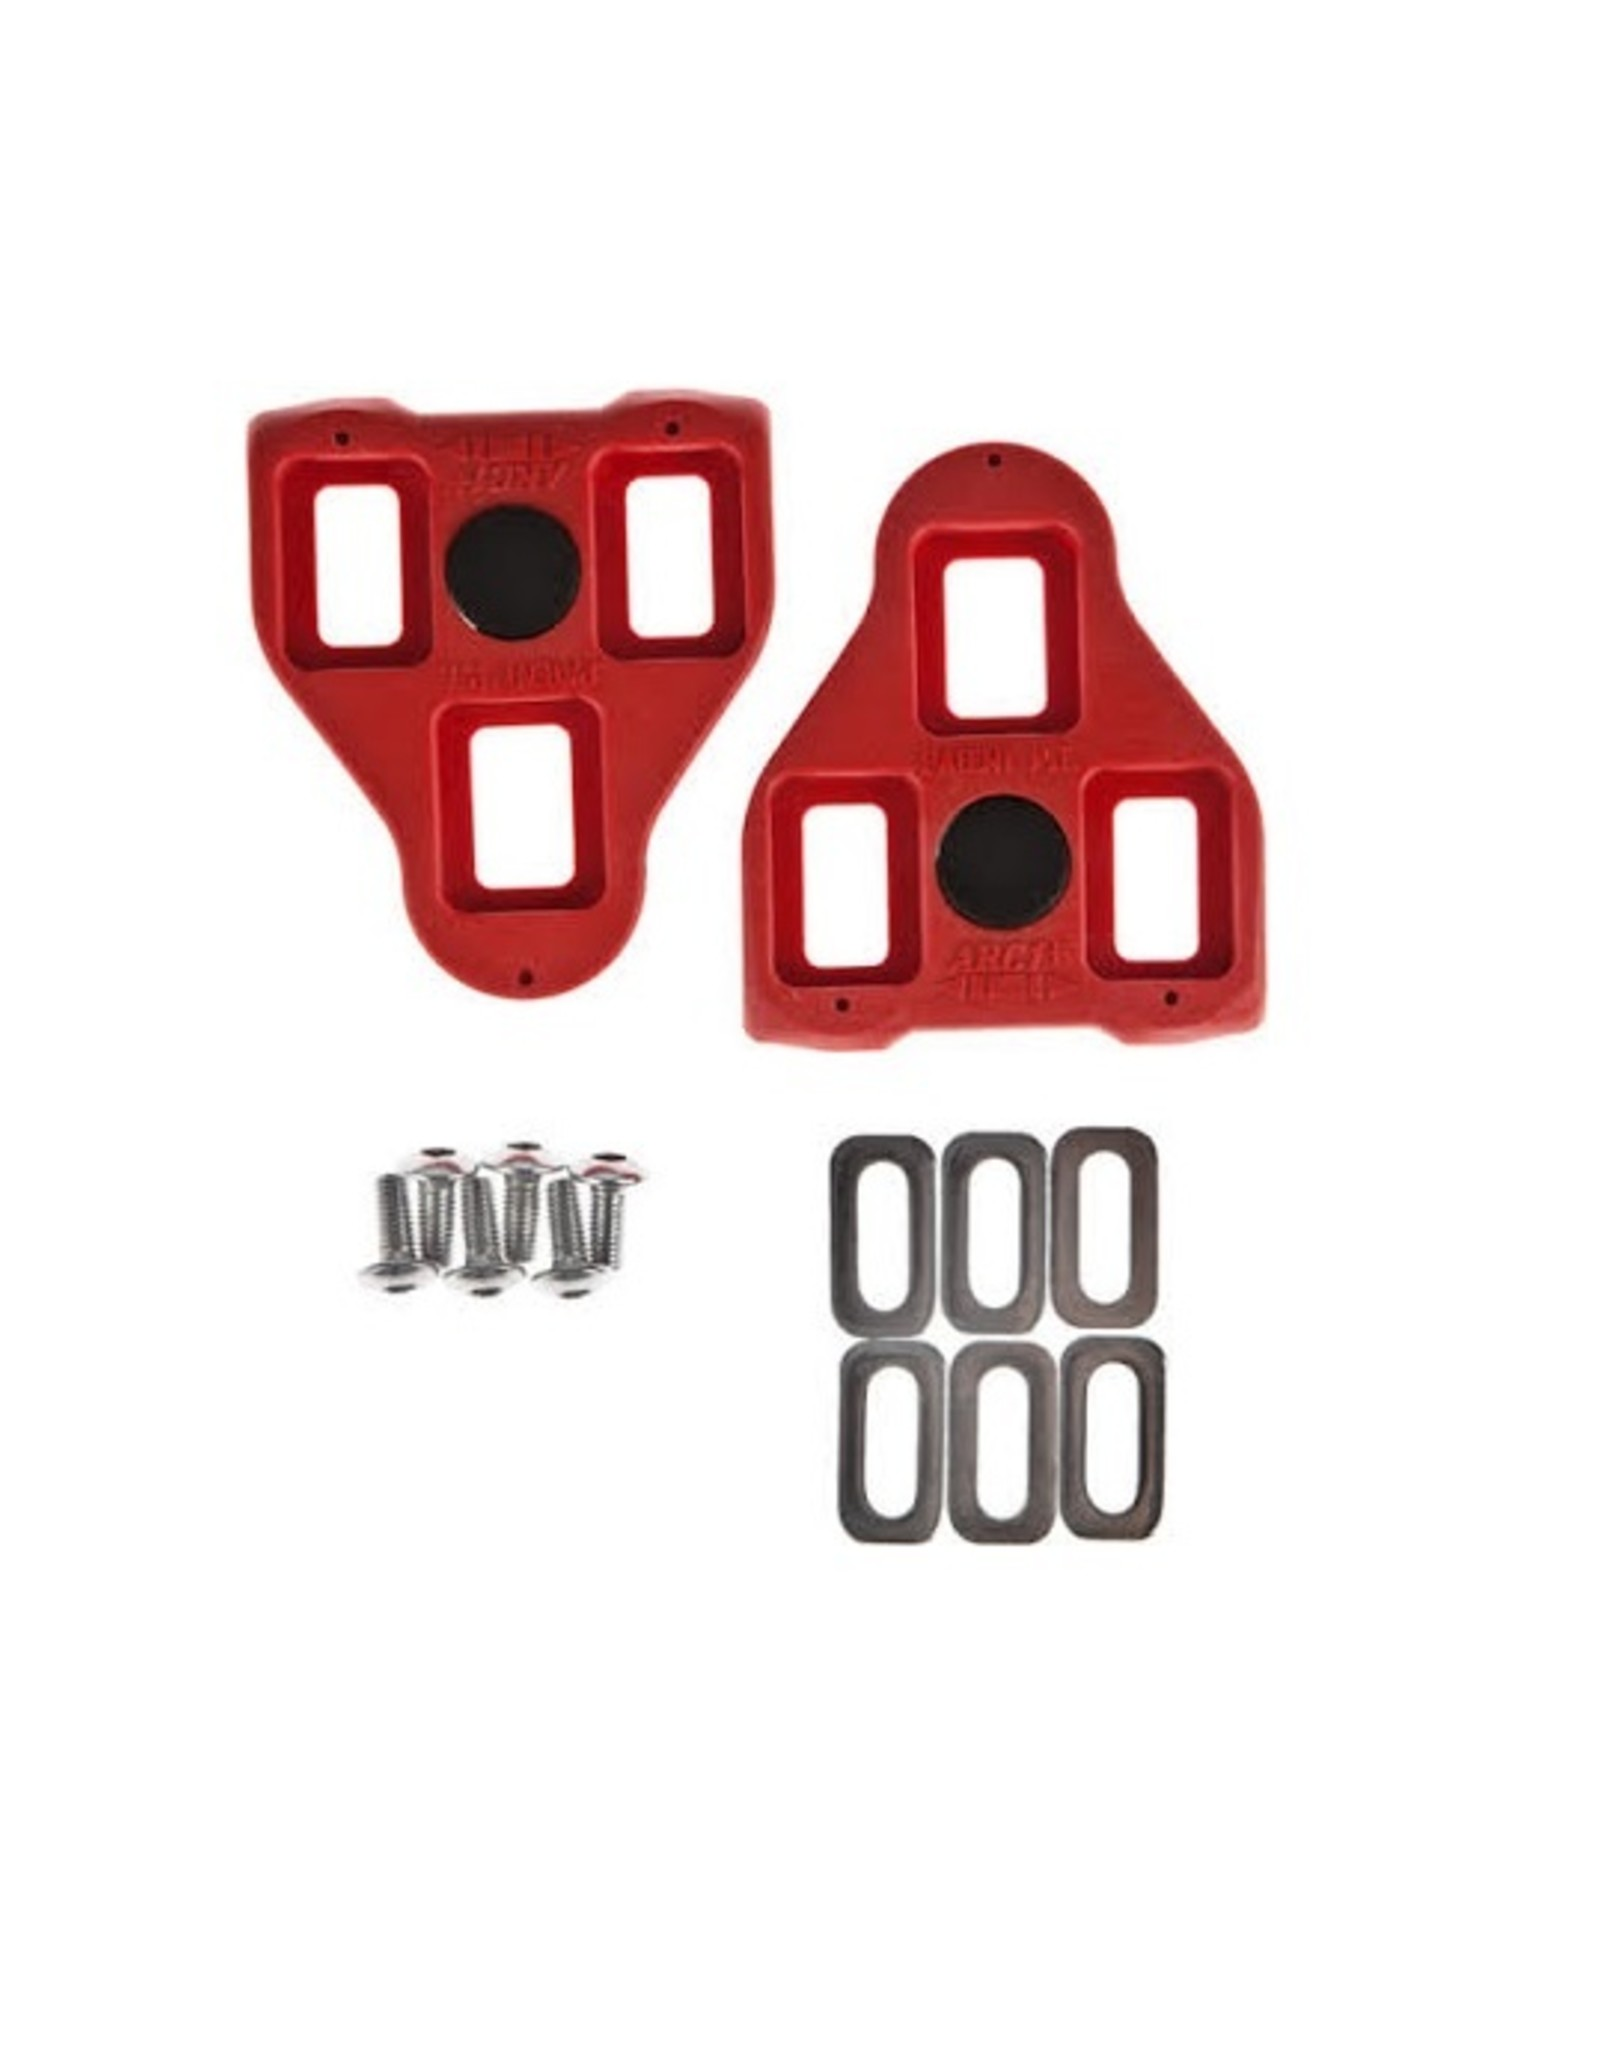 Cleats - Exustar Look Delta Style Red, 9 Degree Float (For Peloton)